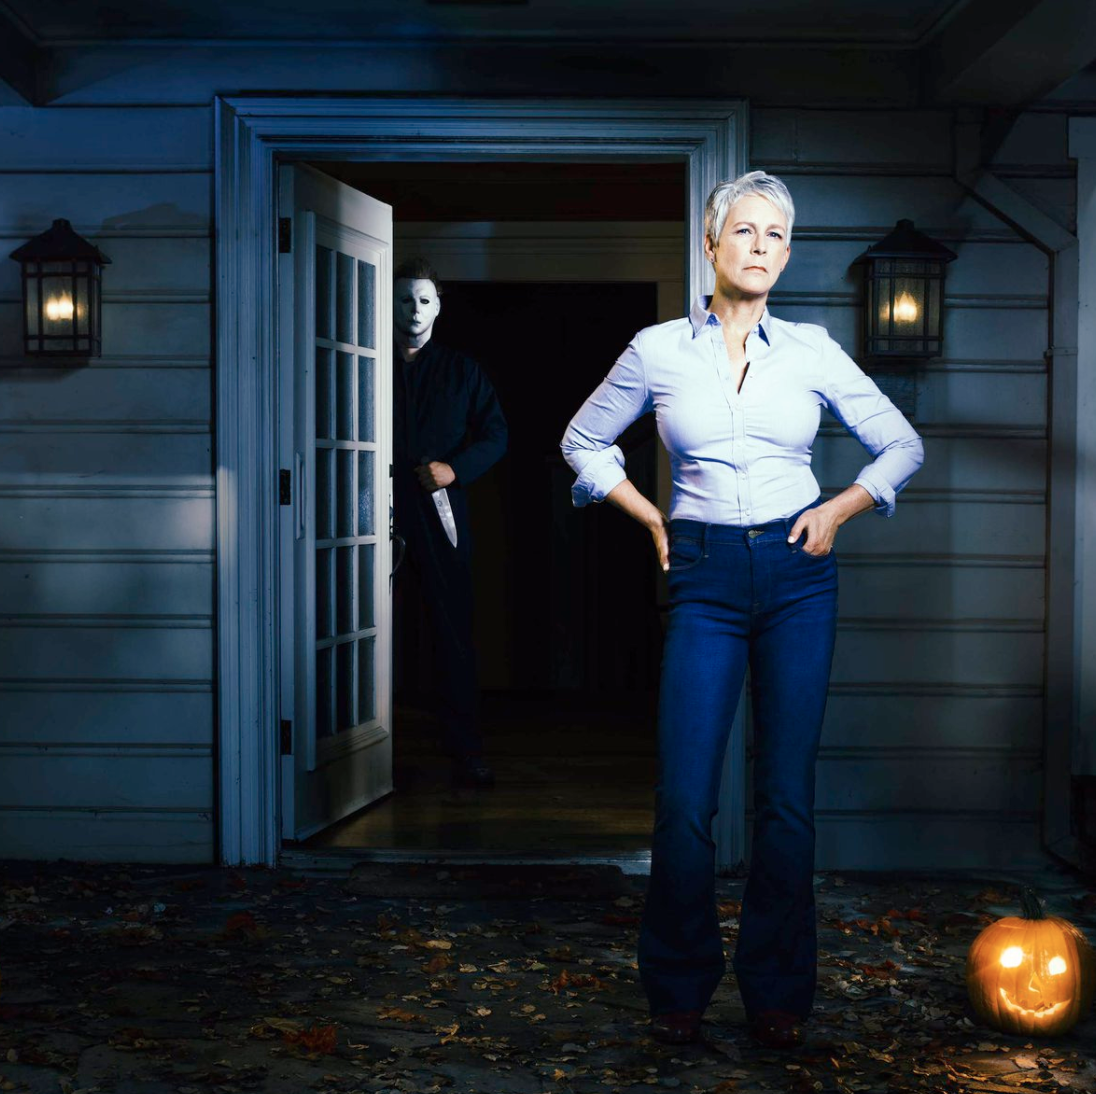 First,look at Jamie Lee Curtis as Laurie Strode in new